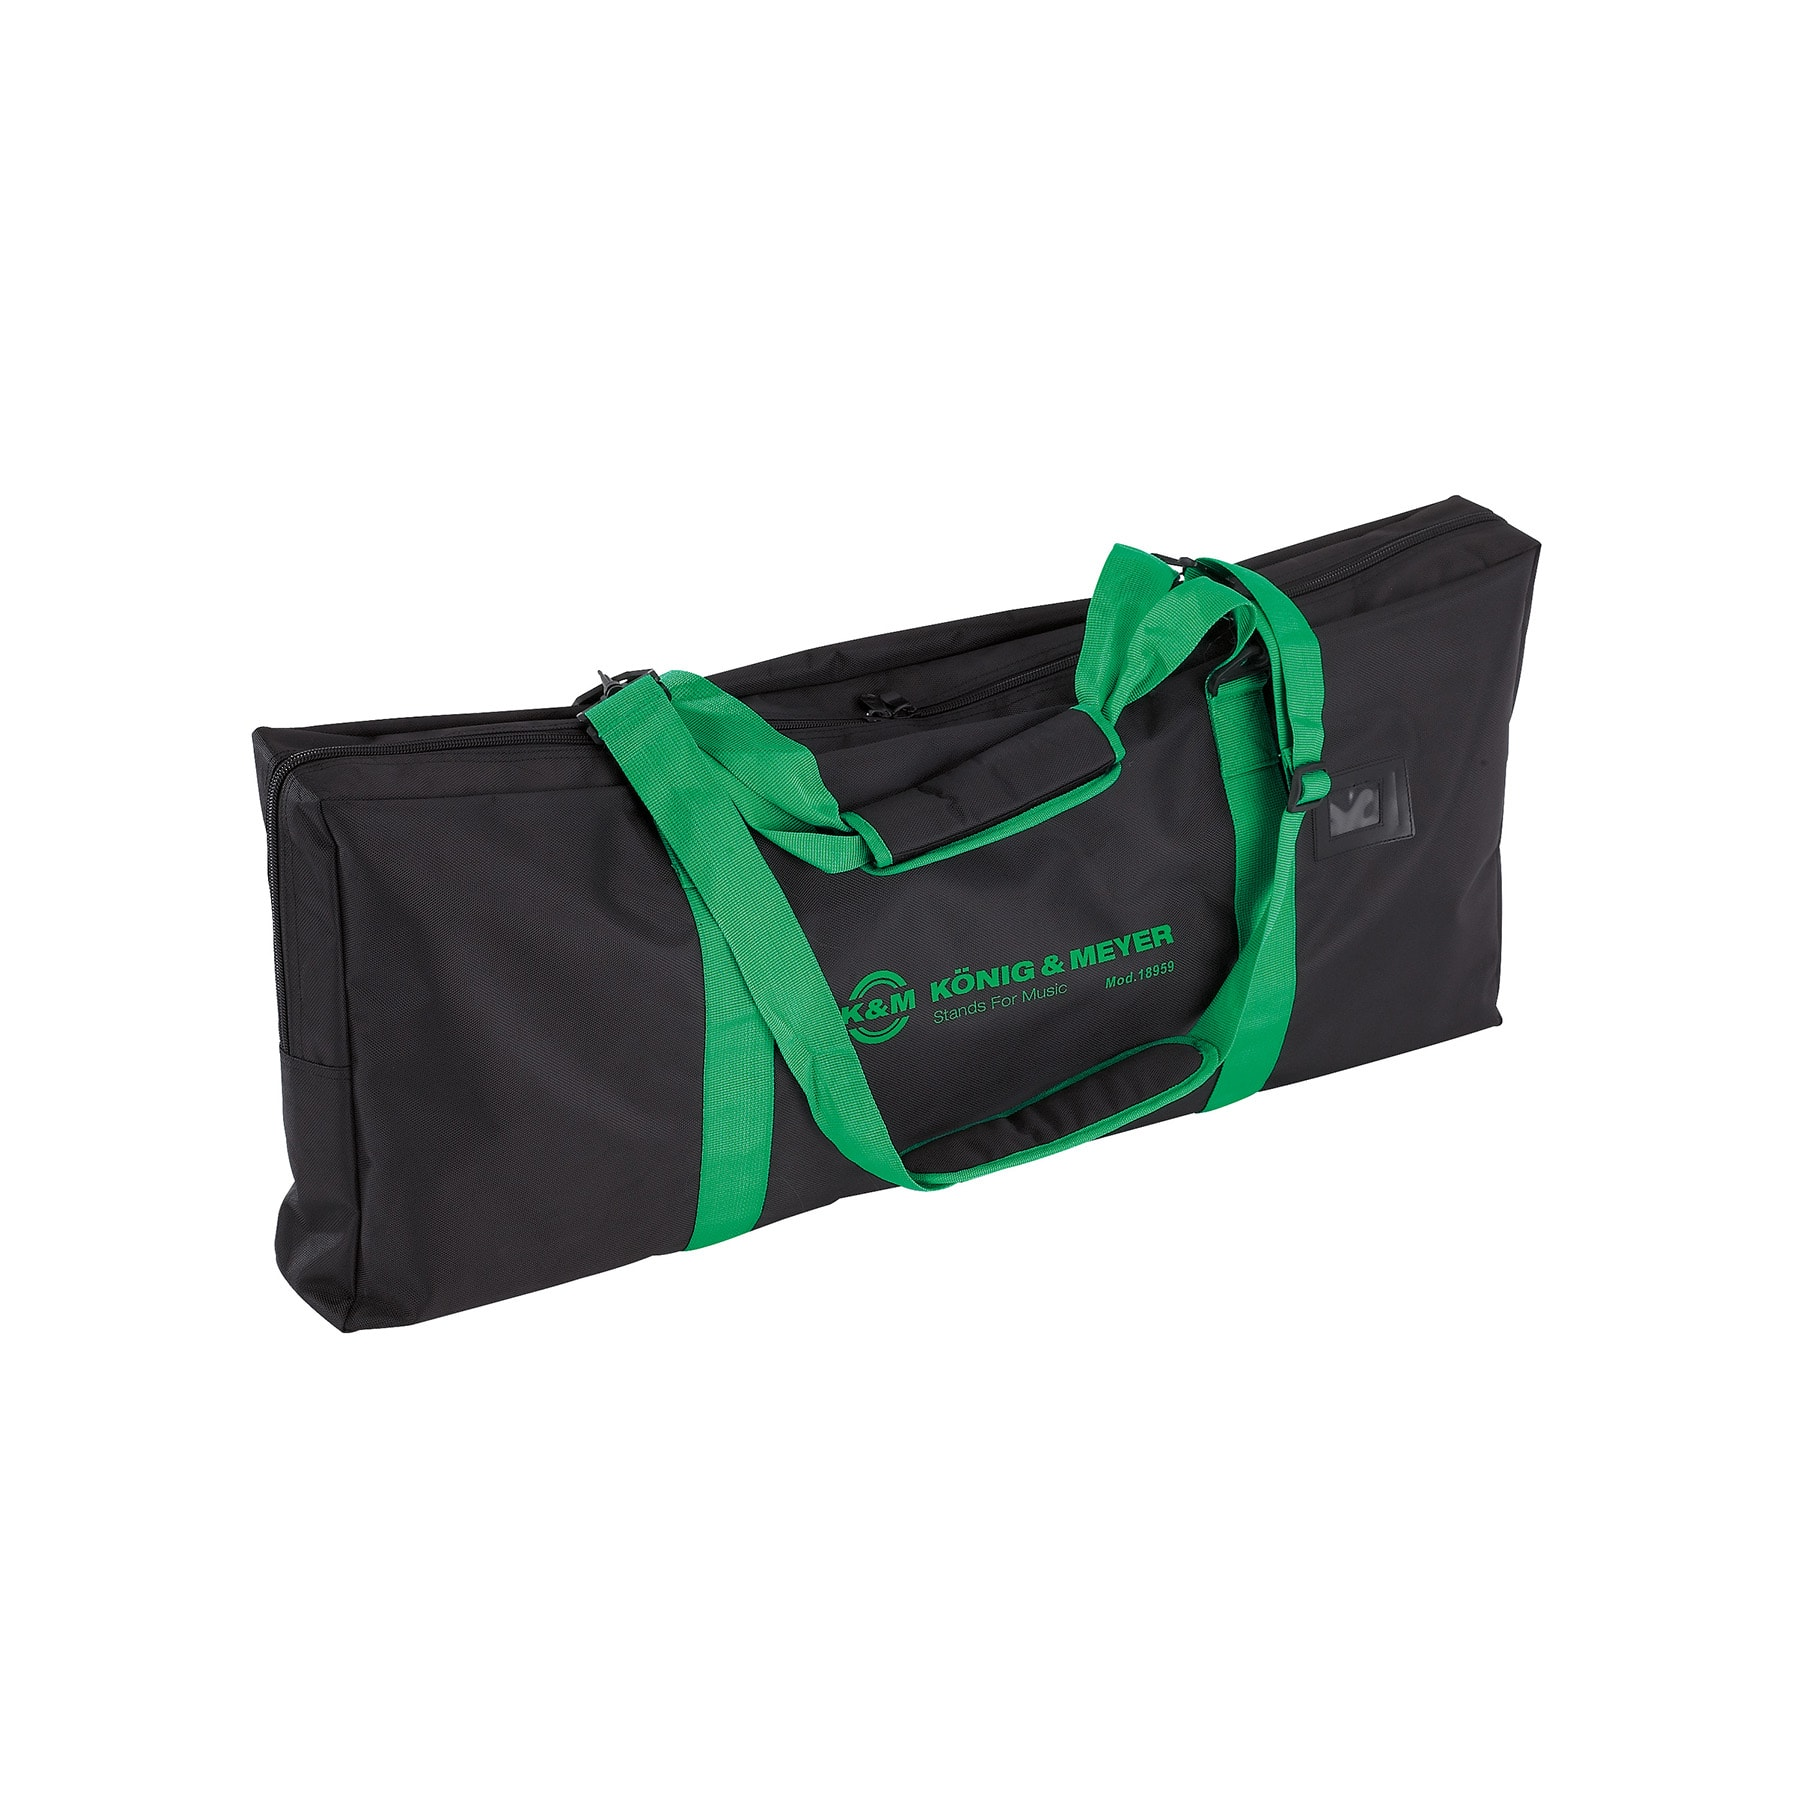 KM18959 - Carrying case for keyboard stand